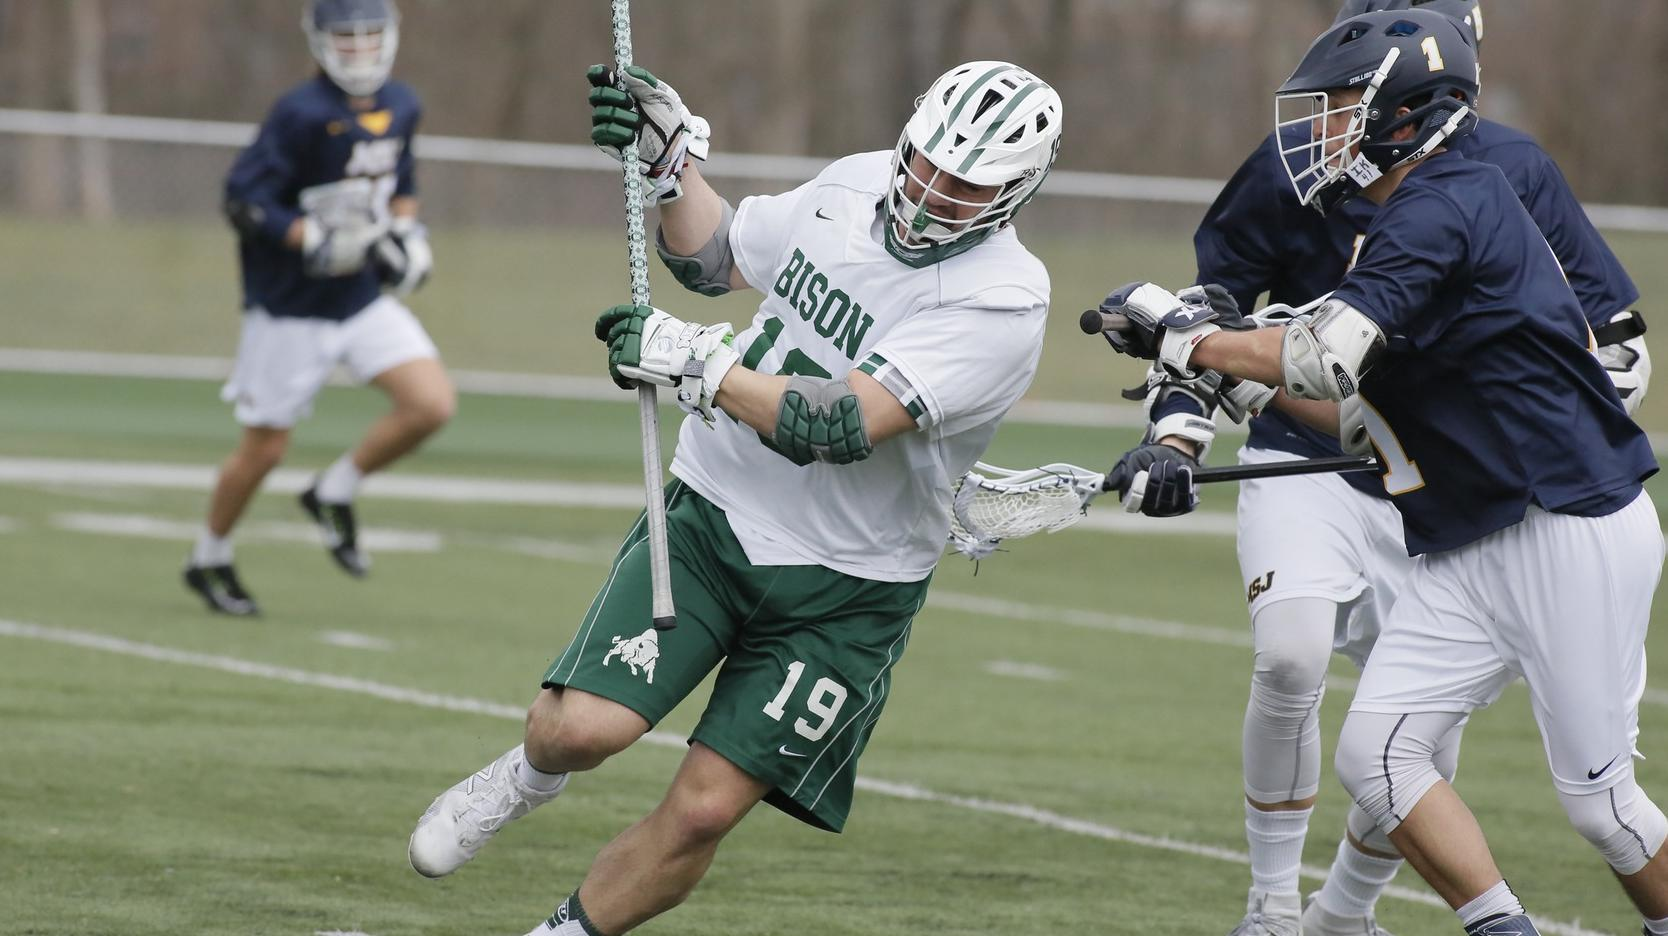 Men's lacrosse falls at Transylvania in ORLC opener